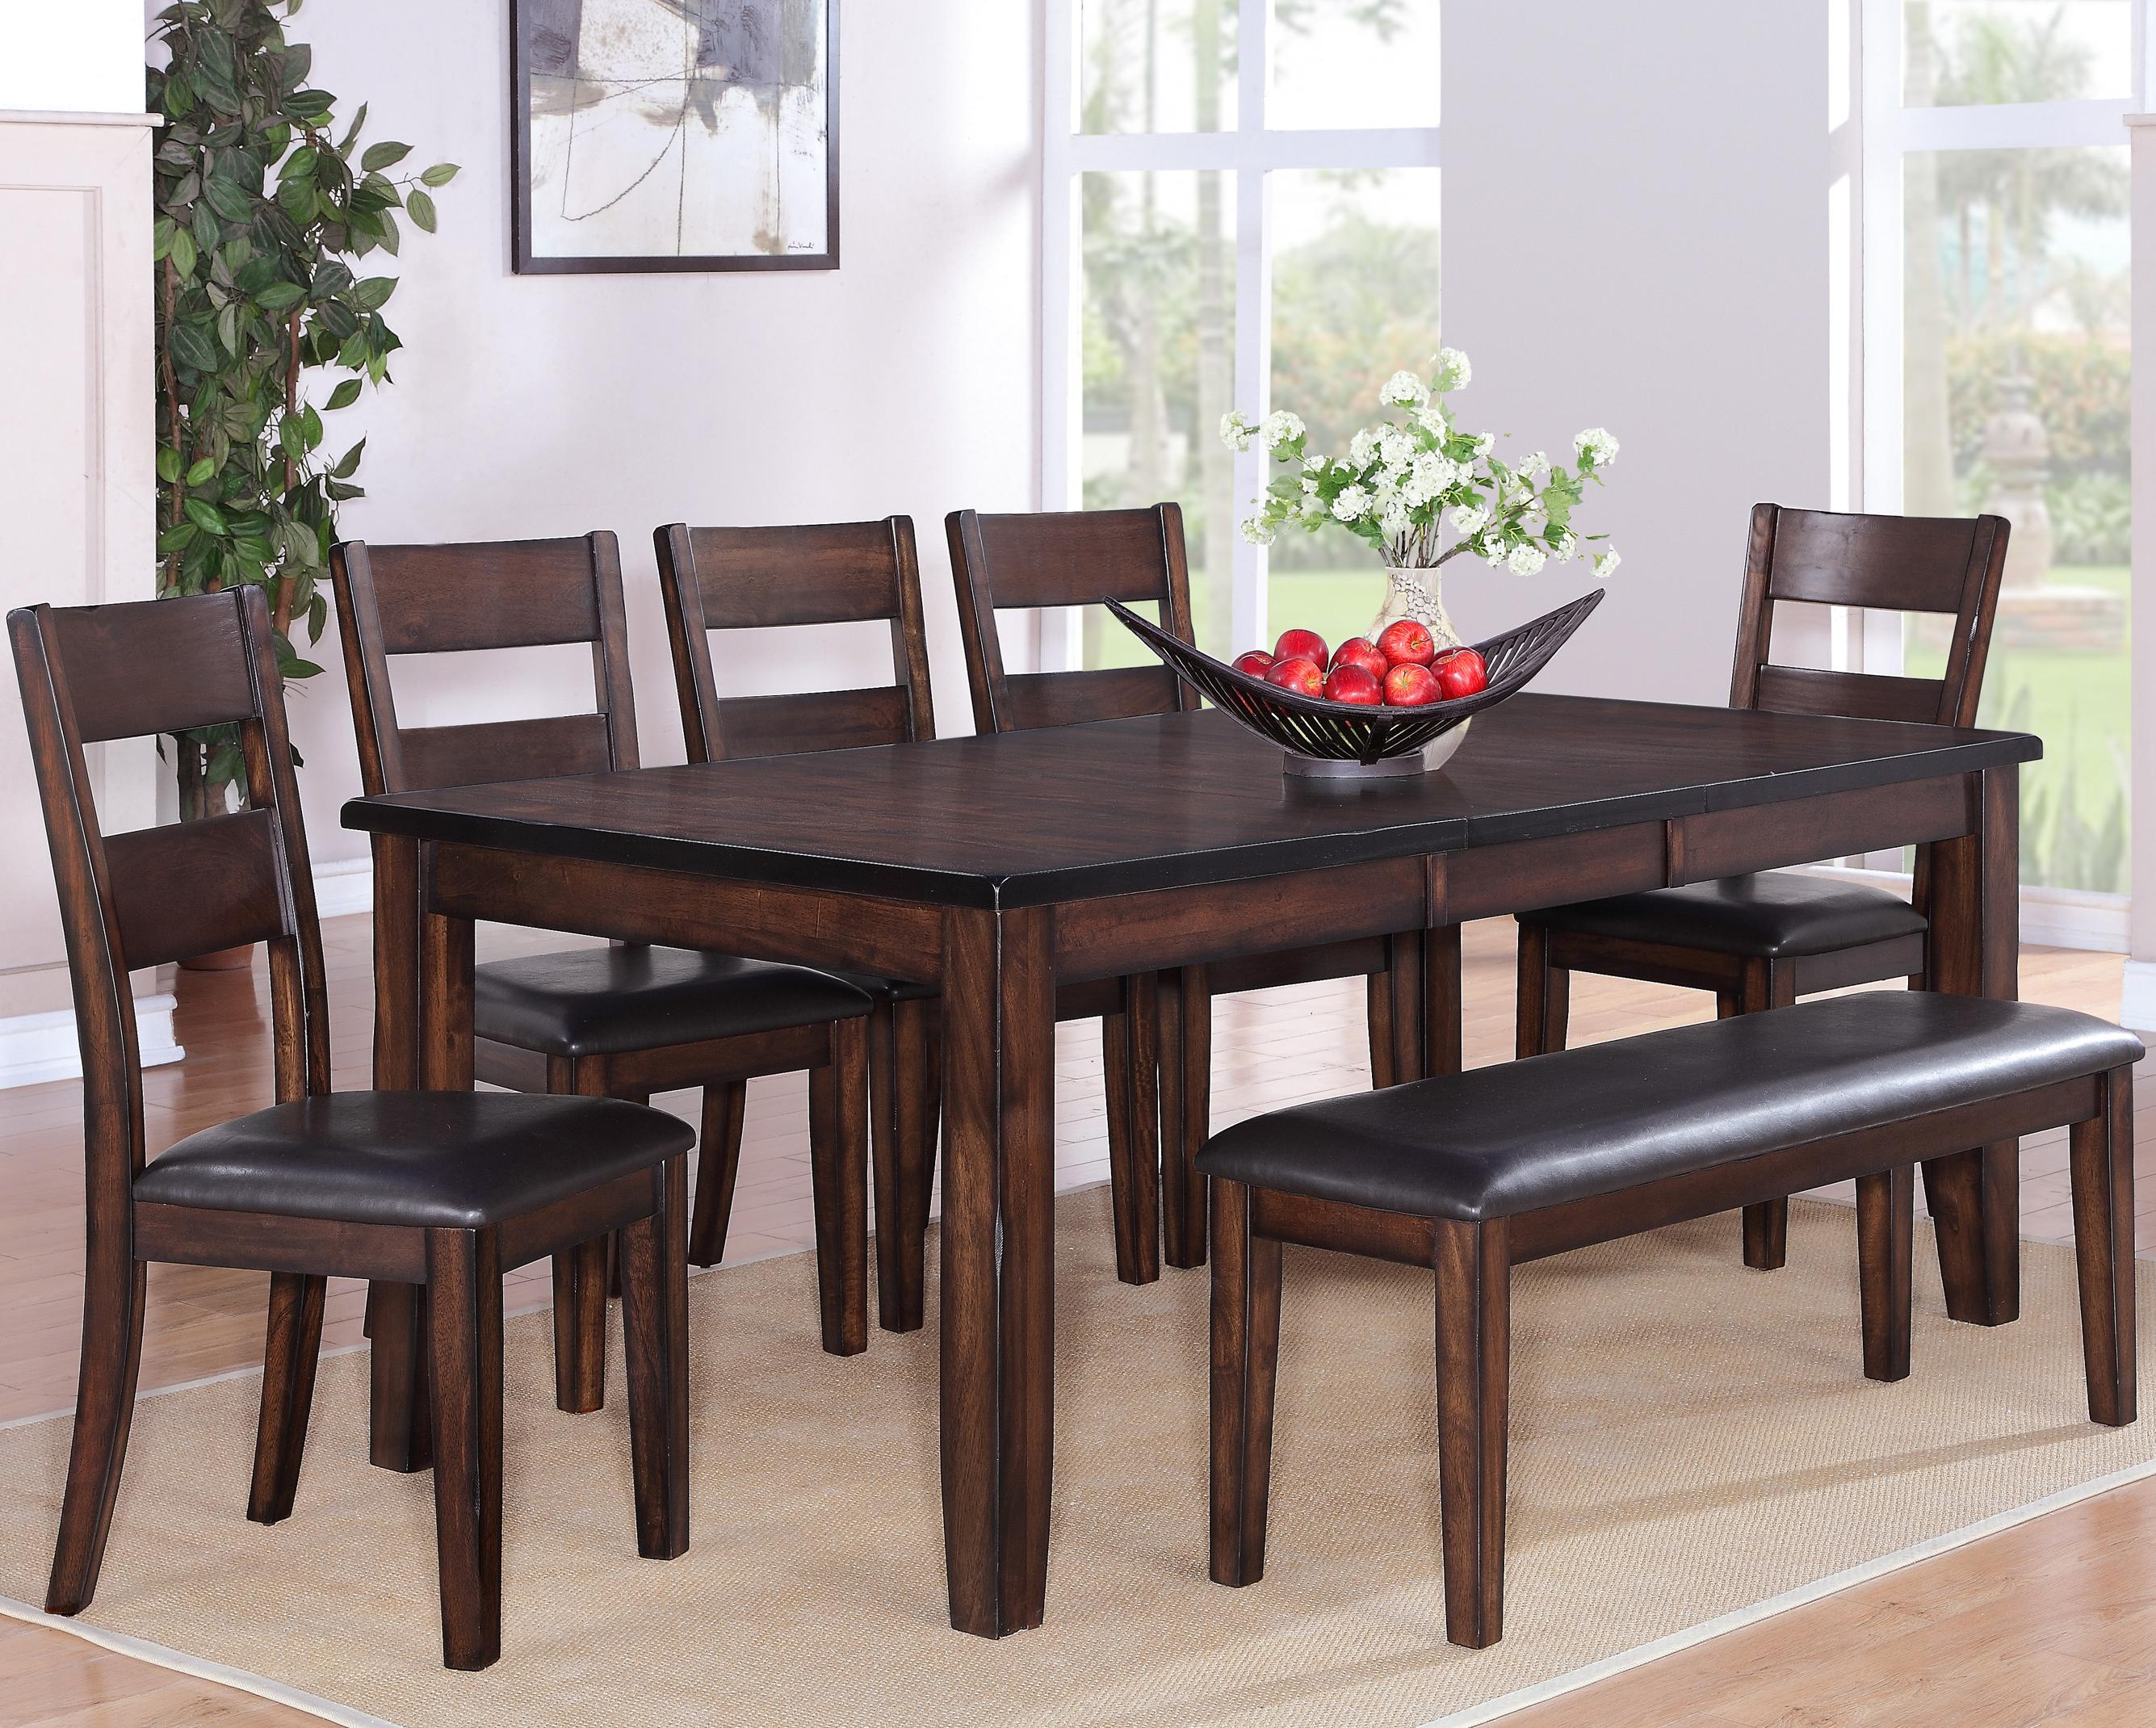 Crown Mark Maldives 7 Piece Dining Set - Item Number: 2360T-4278+5xS+BENCH